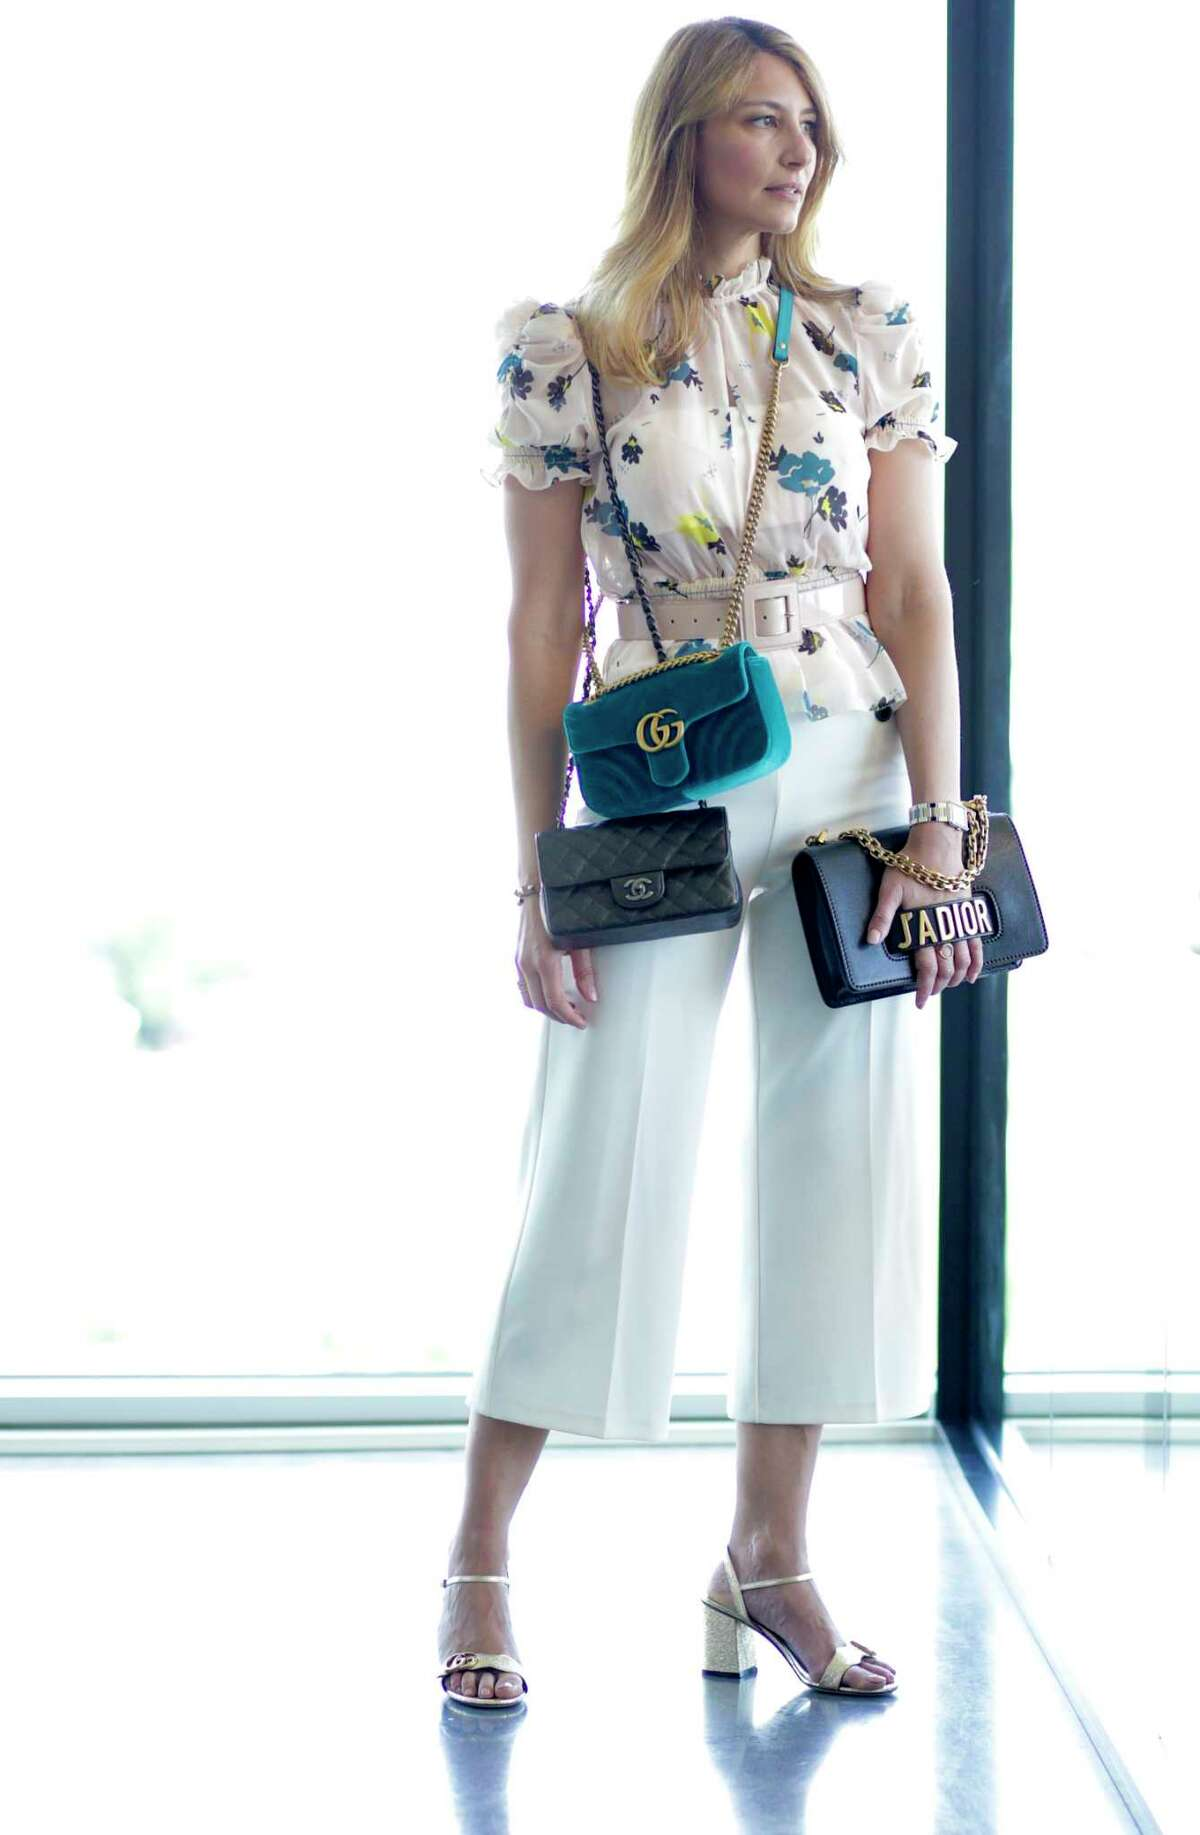 Bag Romance, founded by Houstonian Paola Kustra, is an online business offering luxury handbags for rent. Her stock includes purses from Gucci, Chanel, Celine, Louis Vuitton and more.